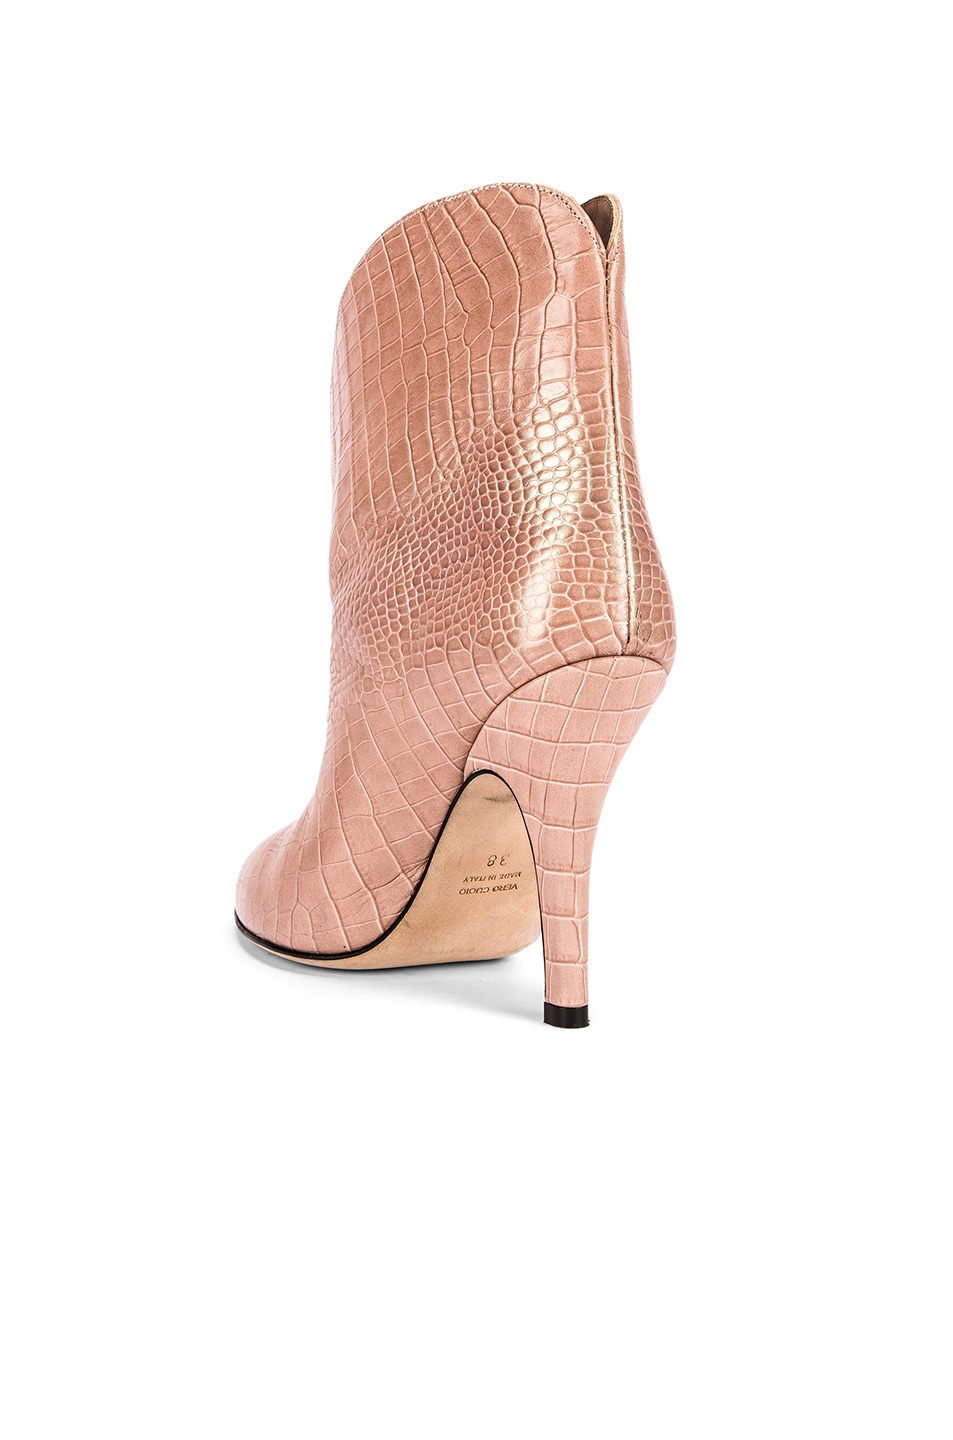 Image 3 of Paris Texas Iridescent Moc Croco Rounded Stiletto Ankle Boot in Pink